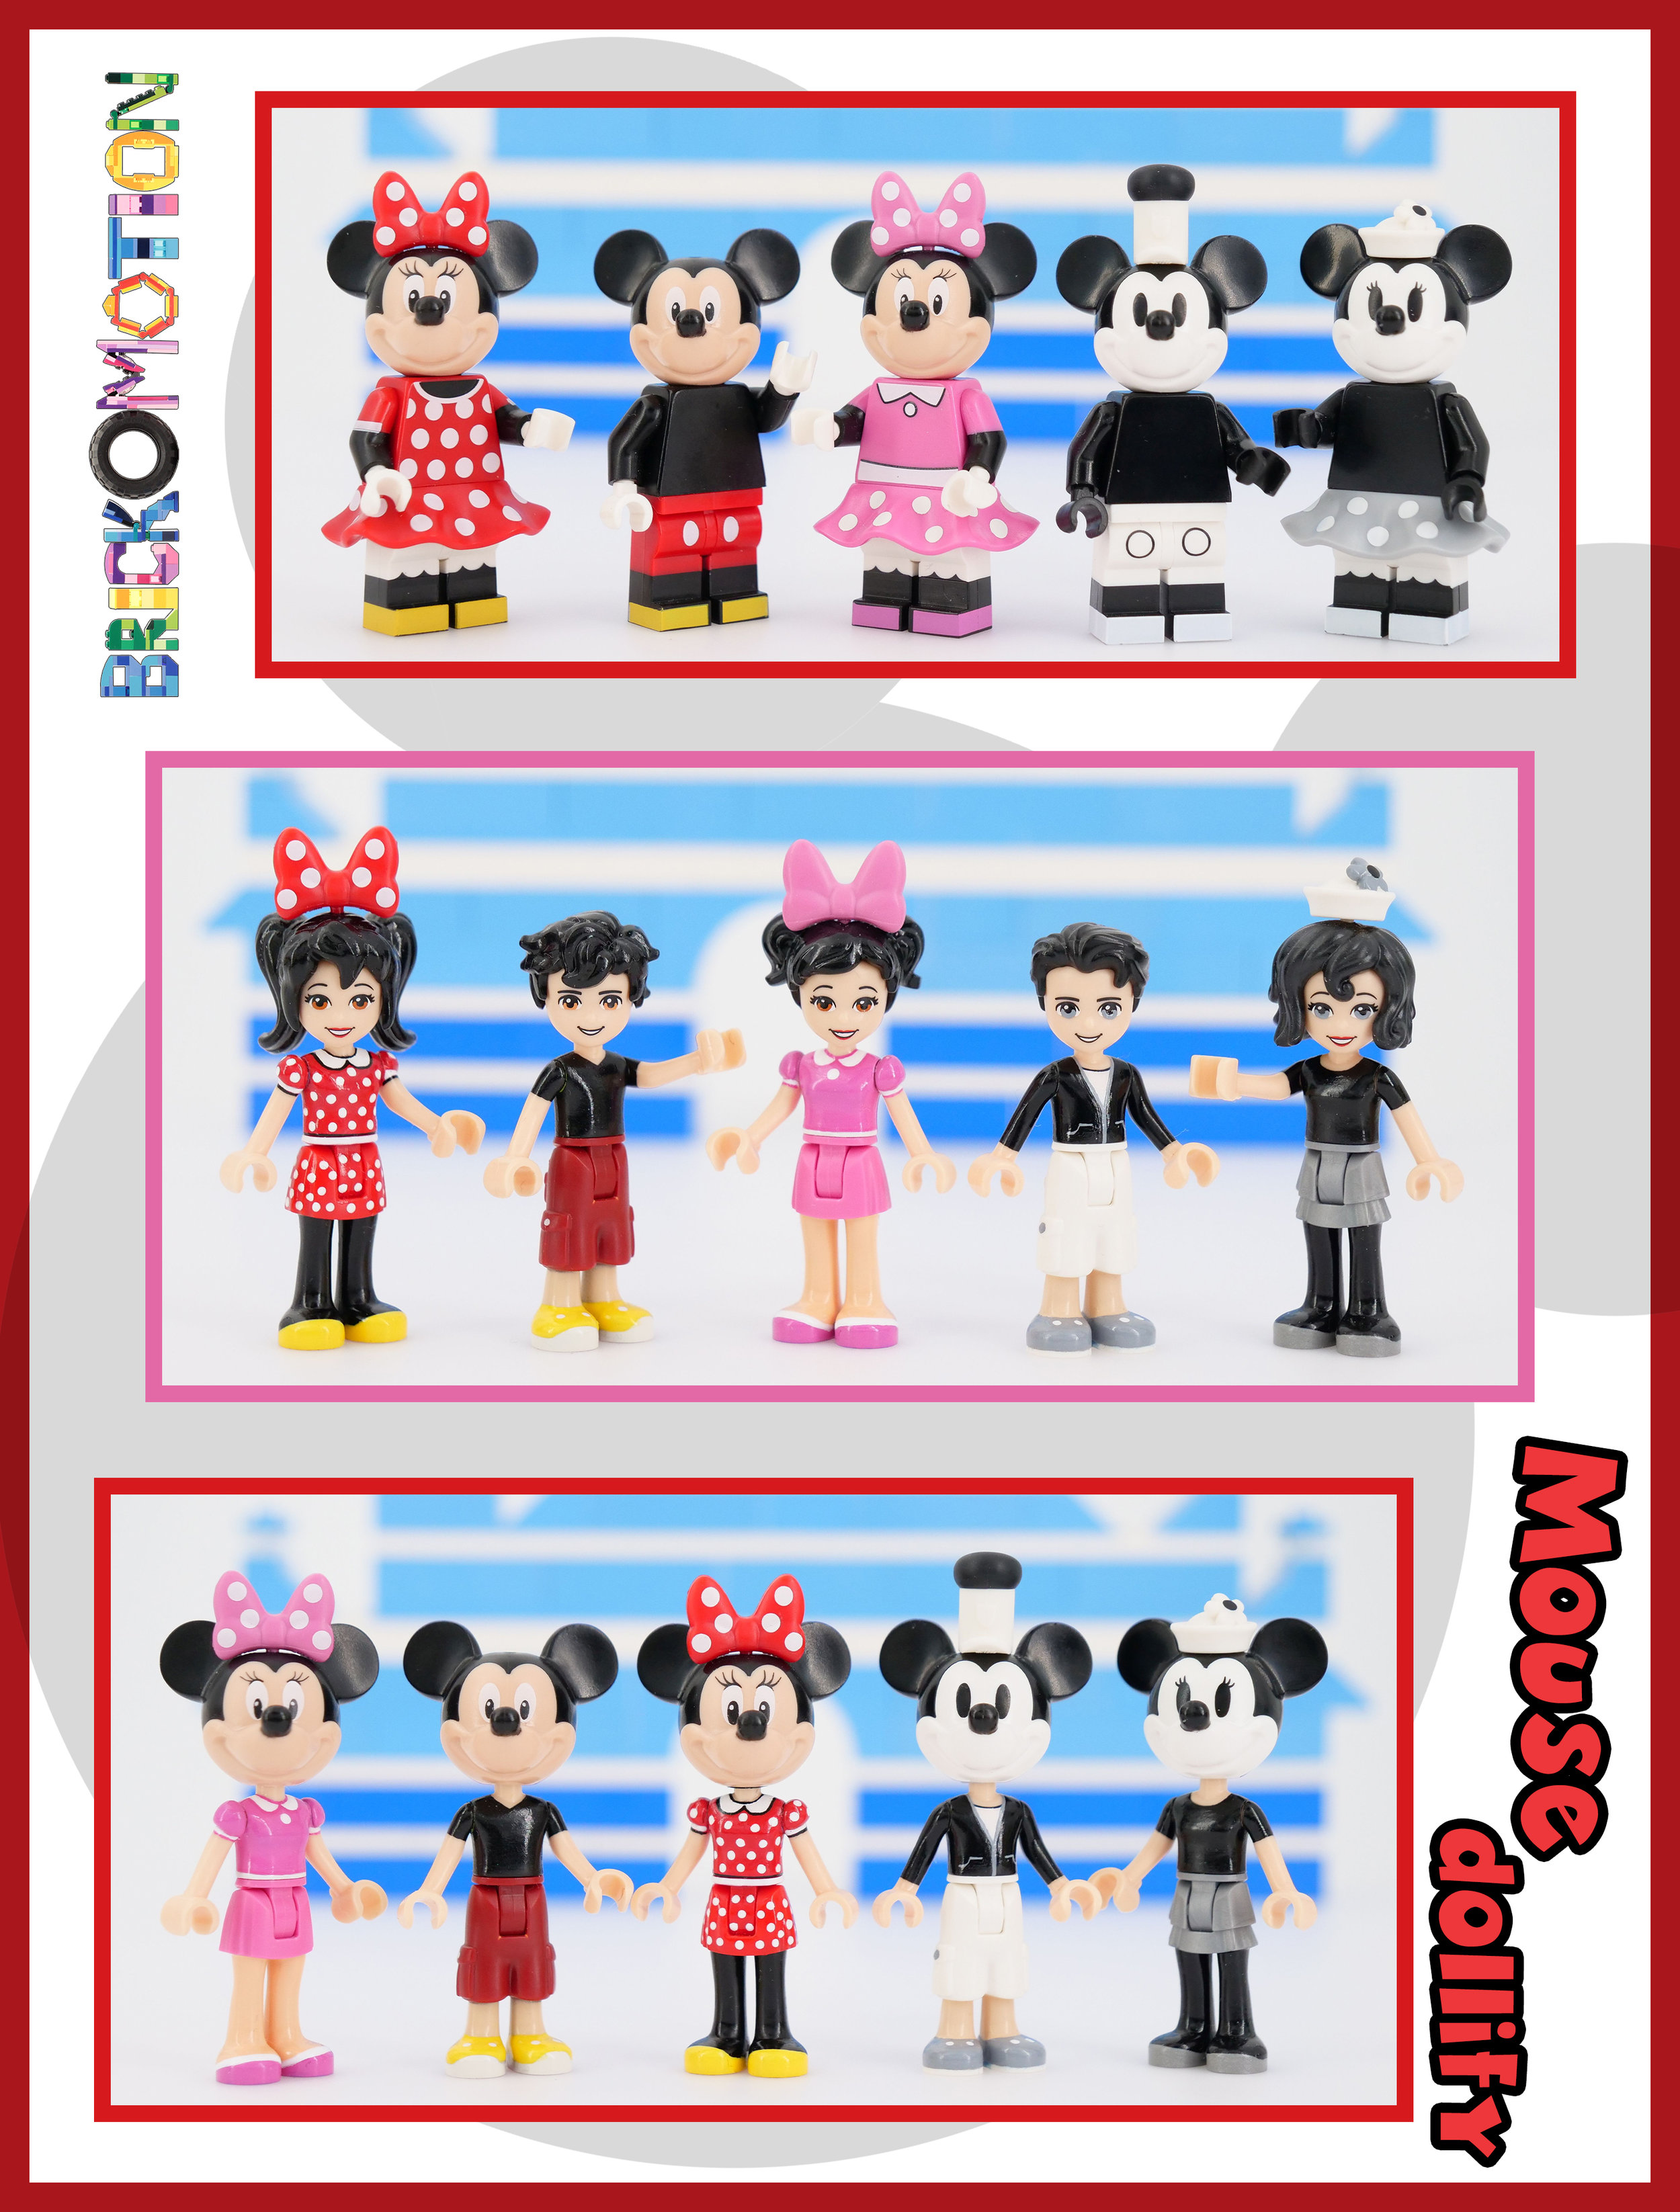 Mickey & Minnie Mouse as LEGO Minidolls